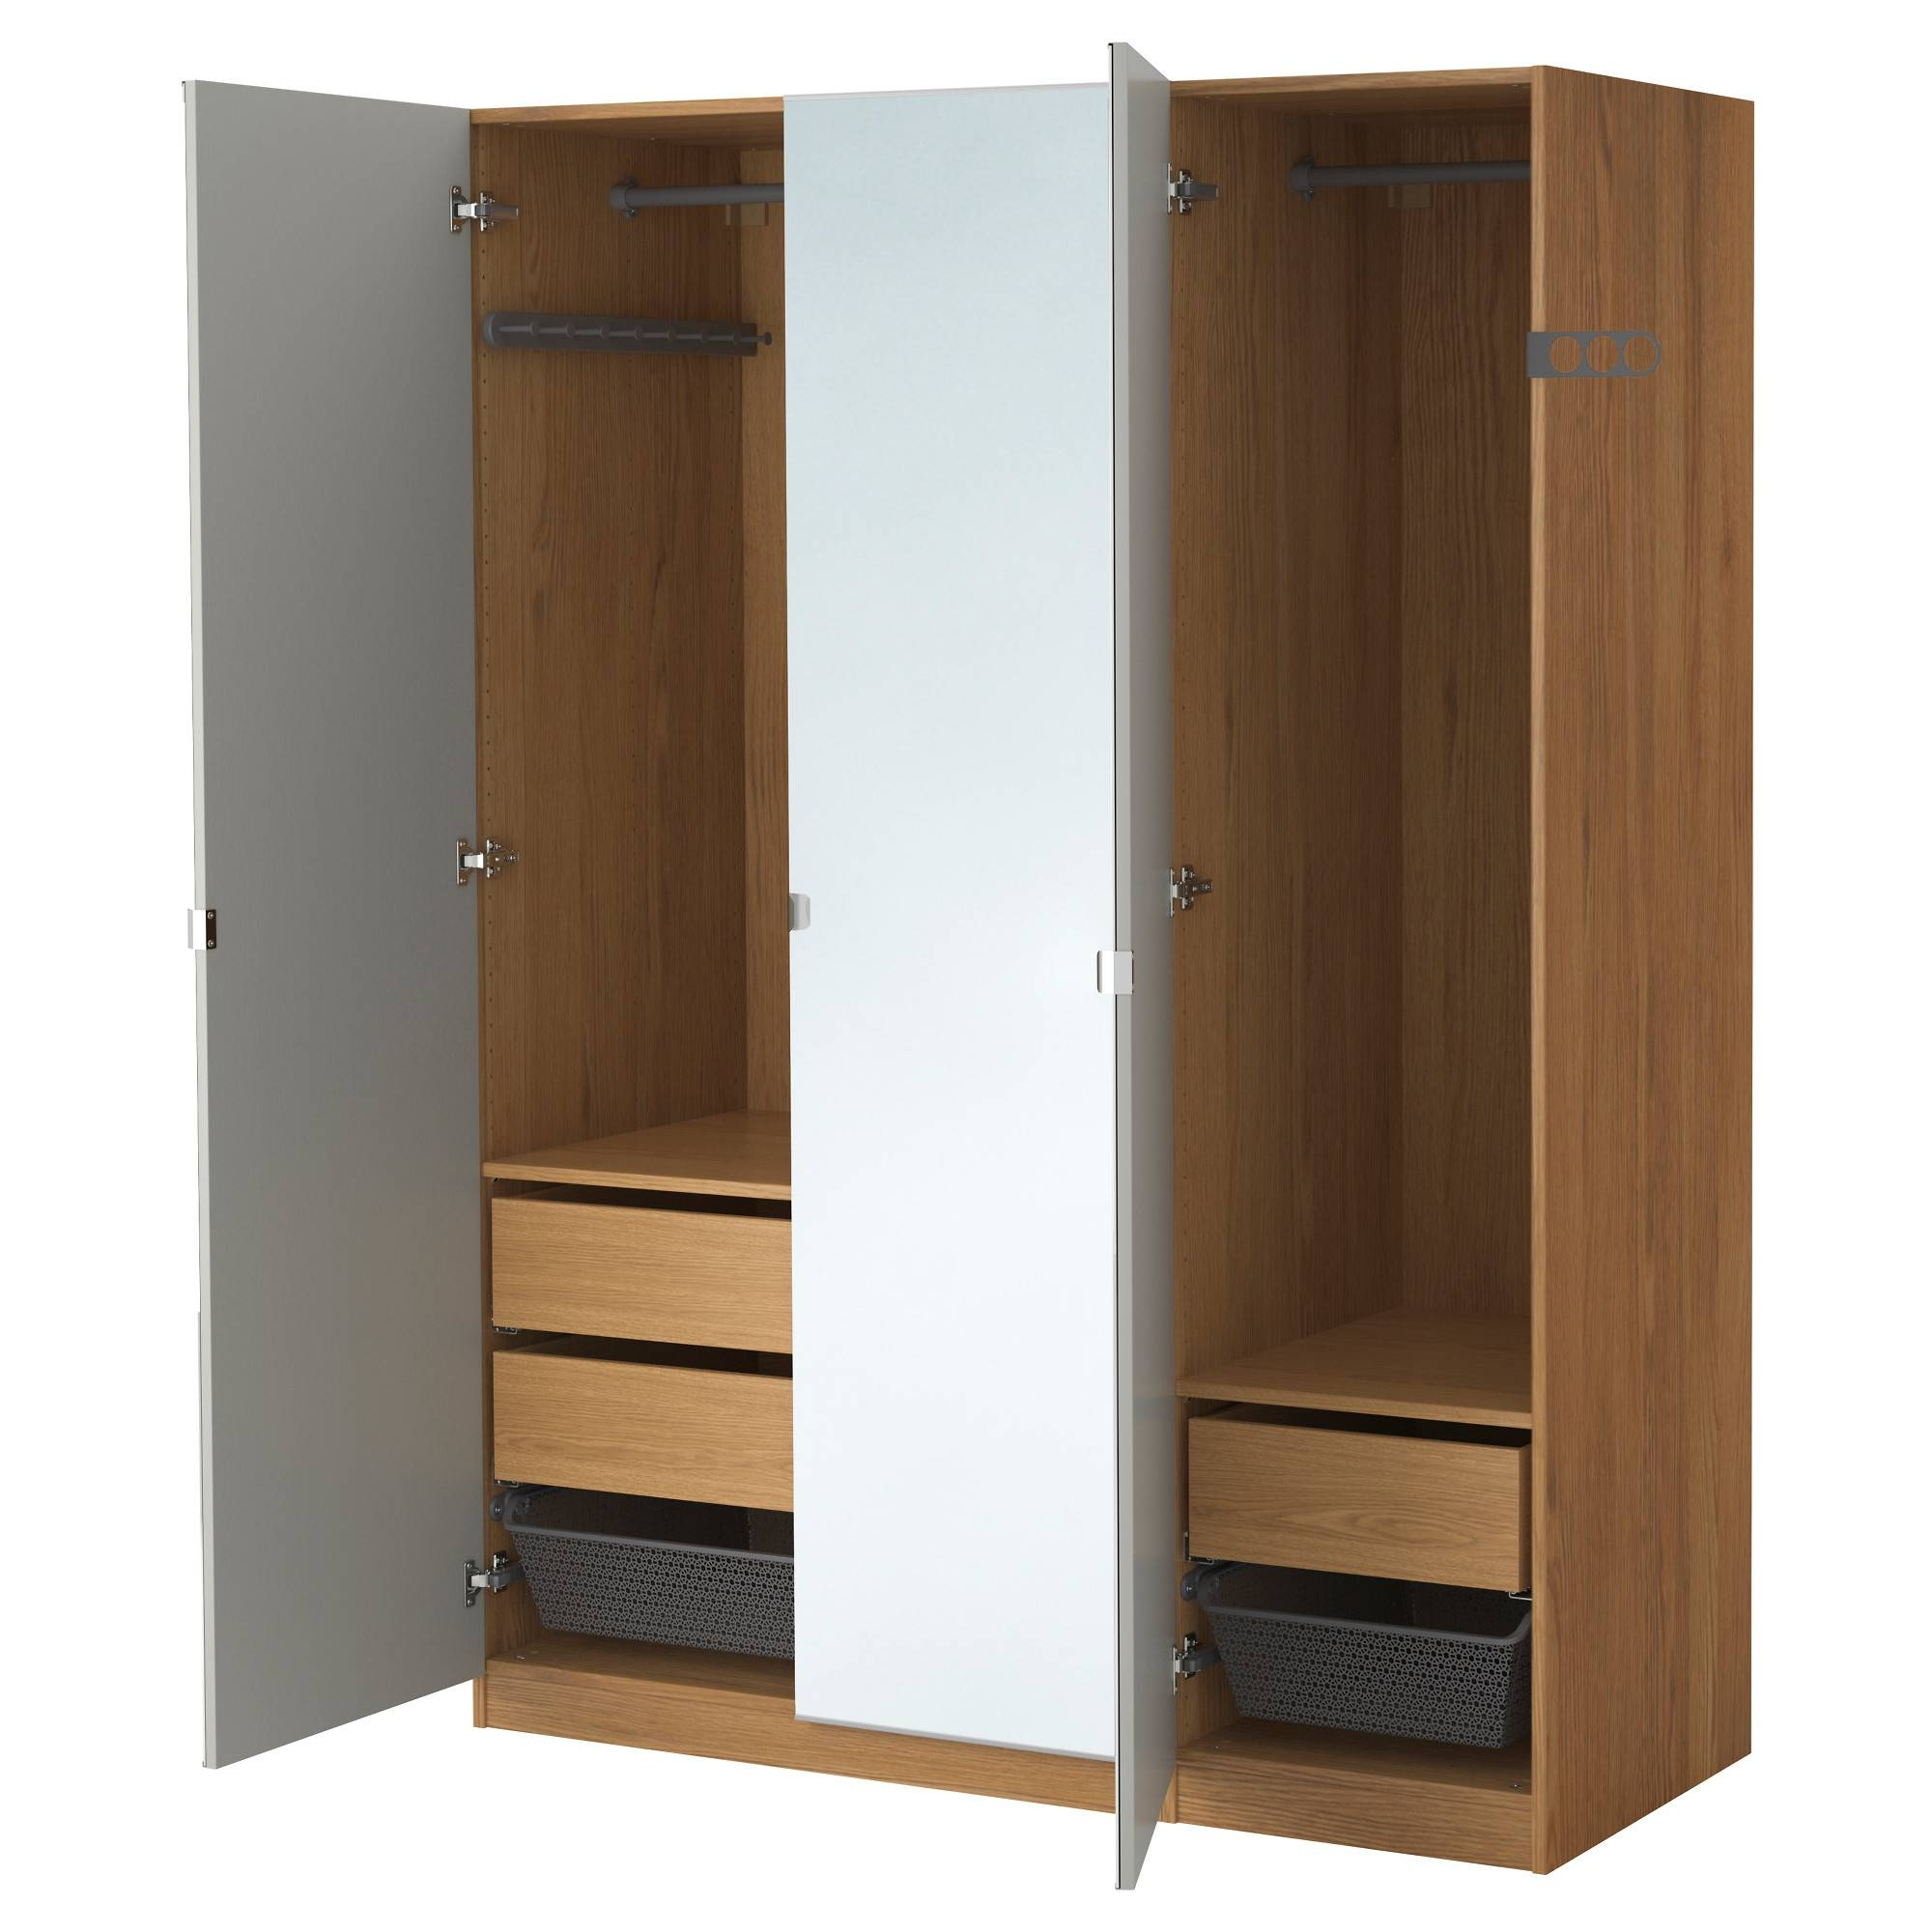 Wardrobes | Ikea throughout Wardrobes With Mirror (Image 15 of 15)